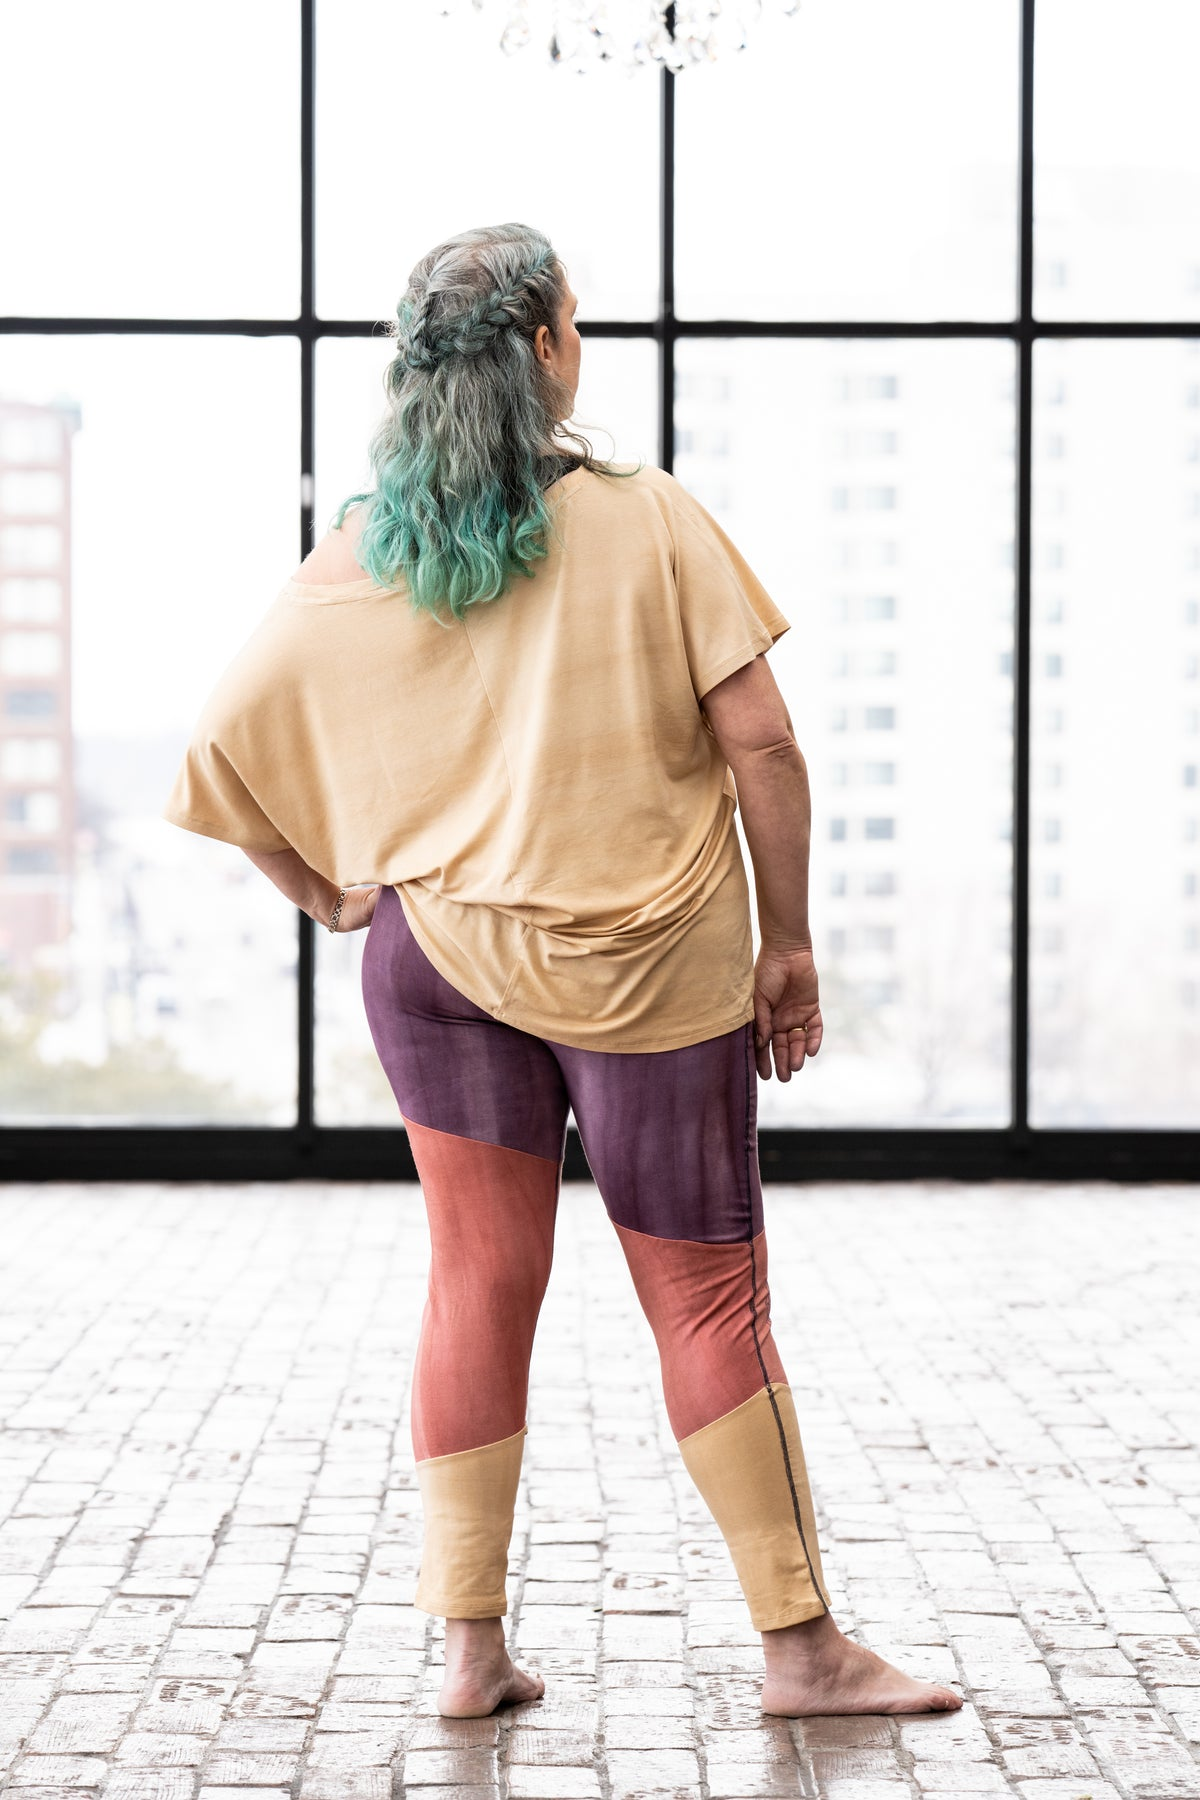 Harmony legging in Thistle, Blossom & Flax